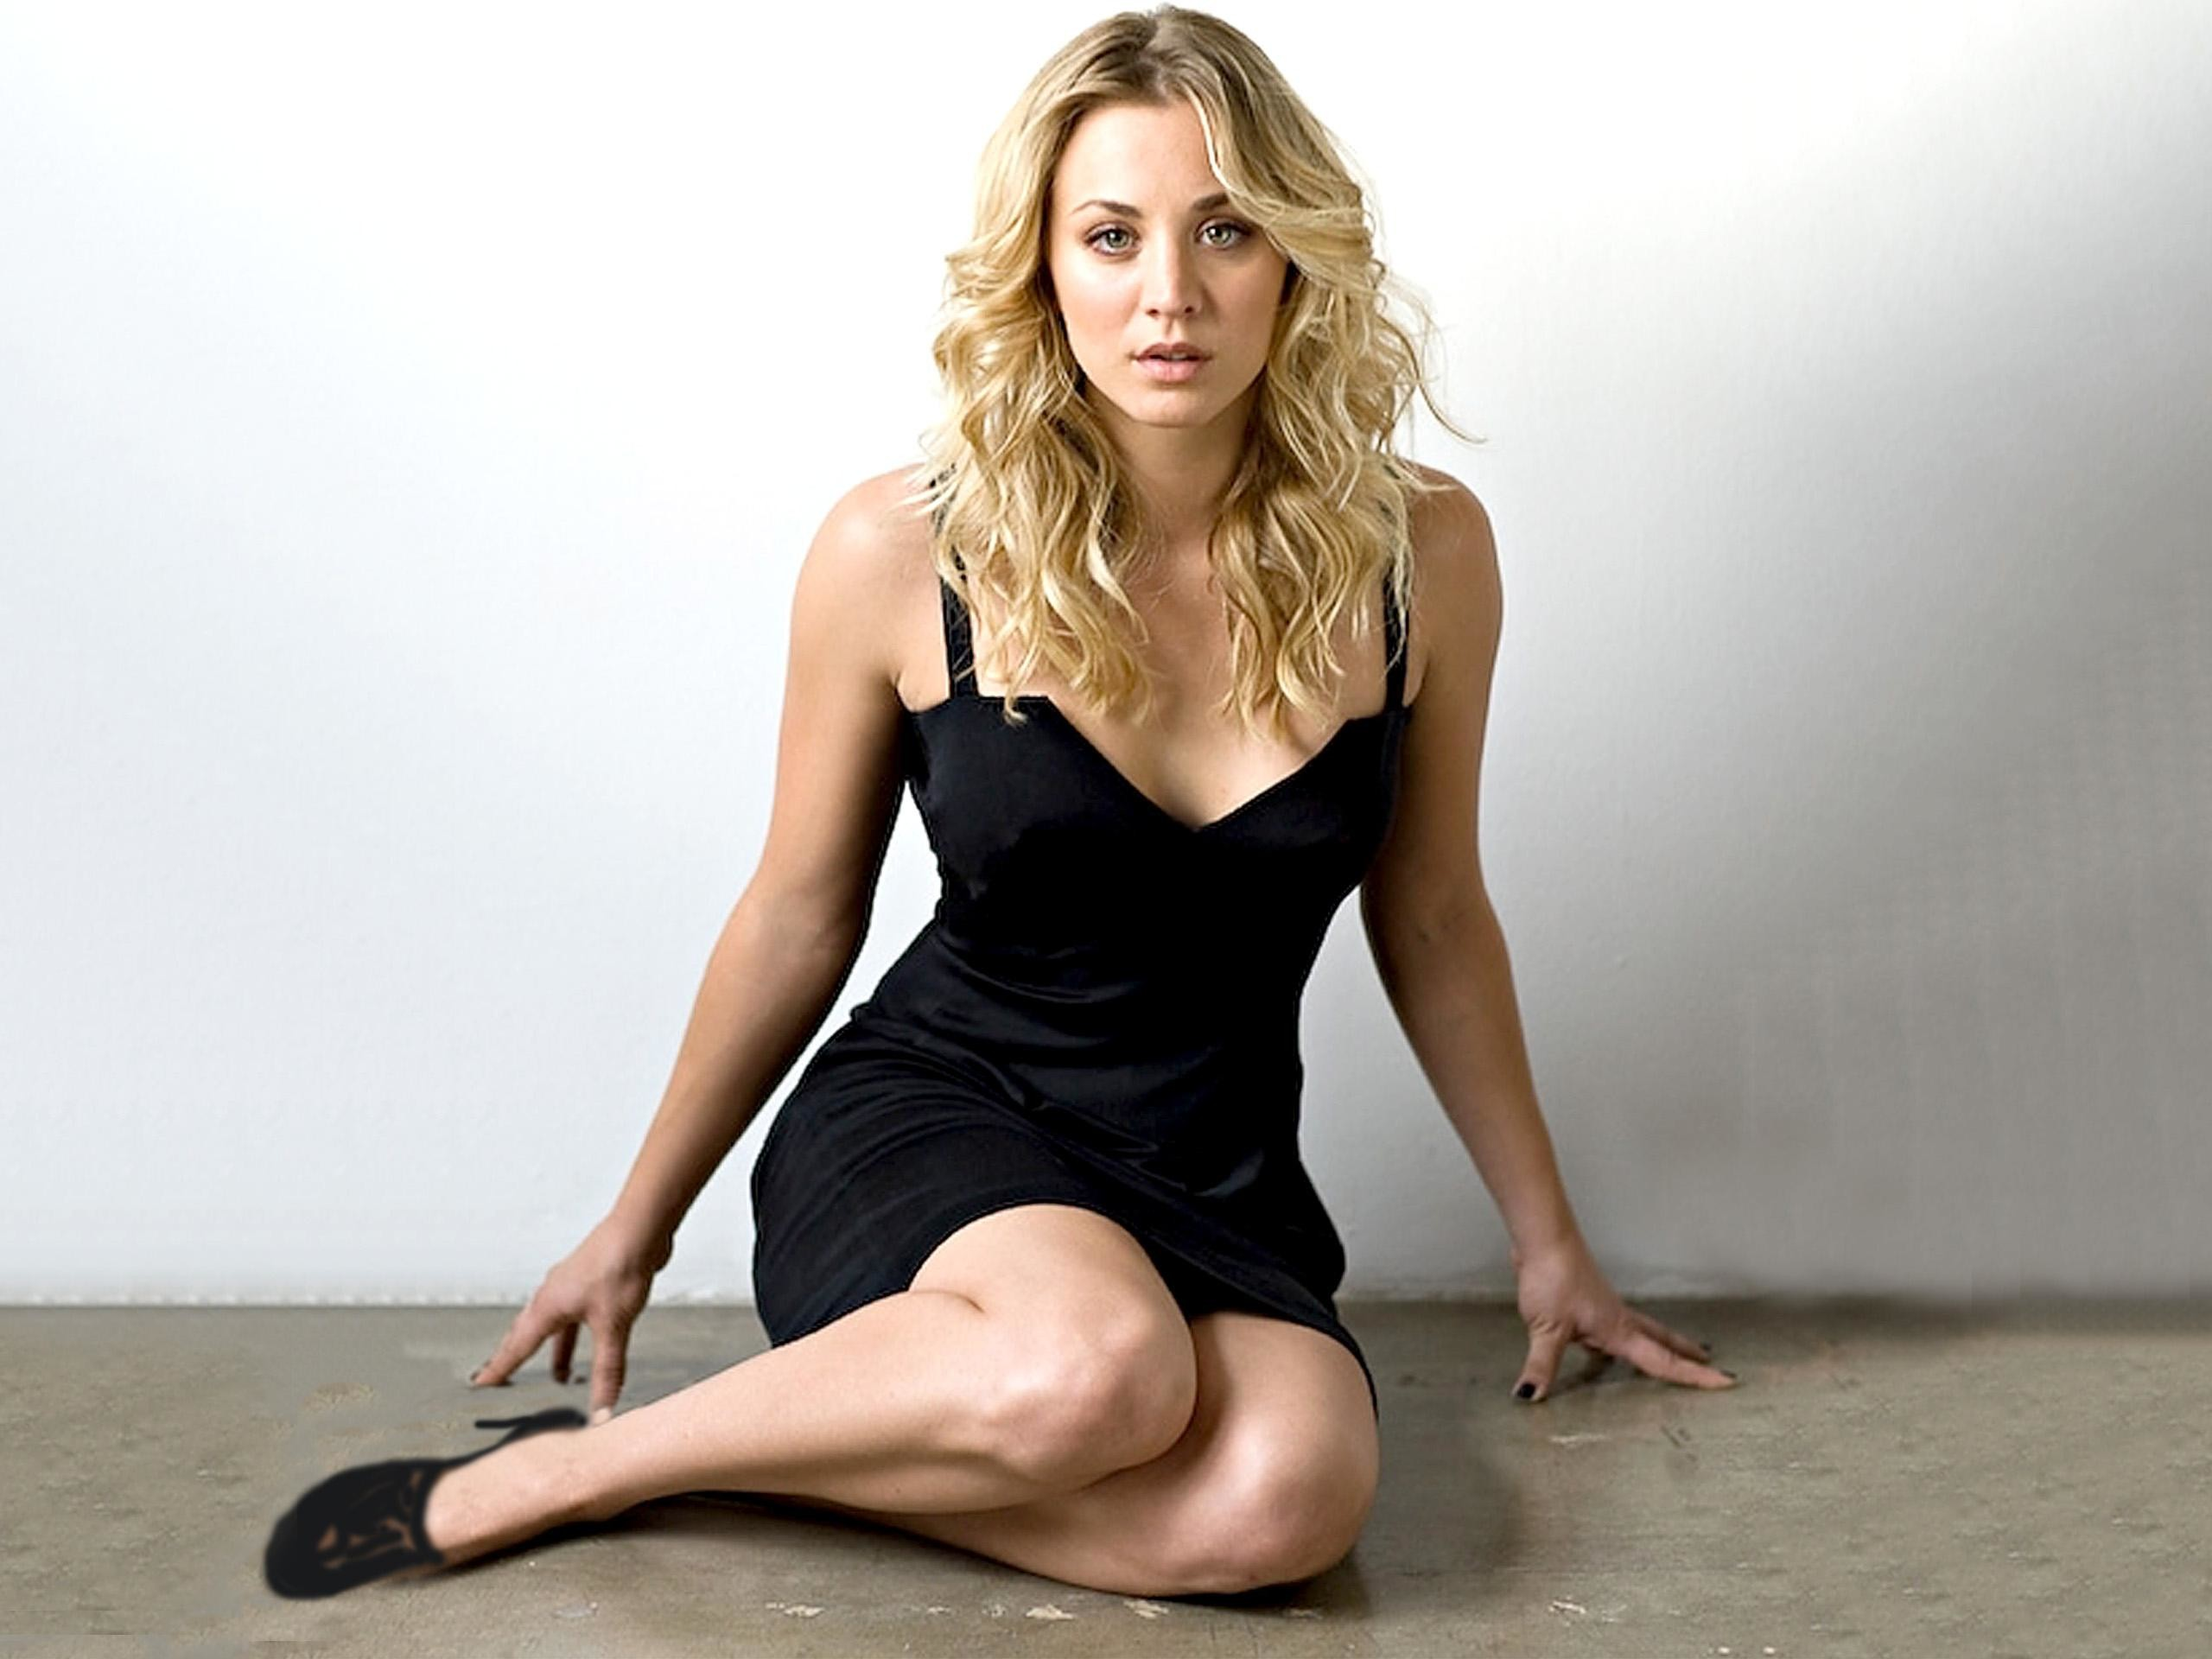 2560x1920 - Kaley Cuoco Wallpapers 8